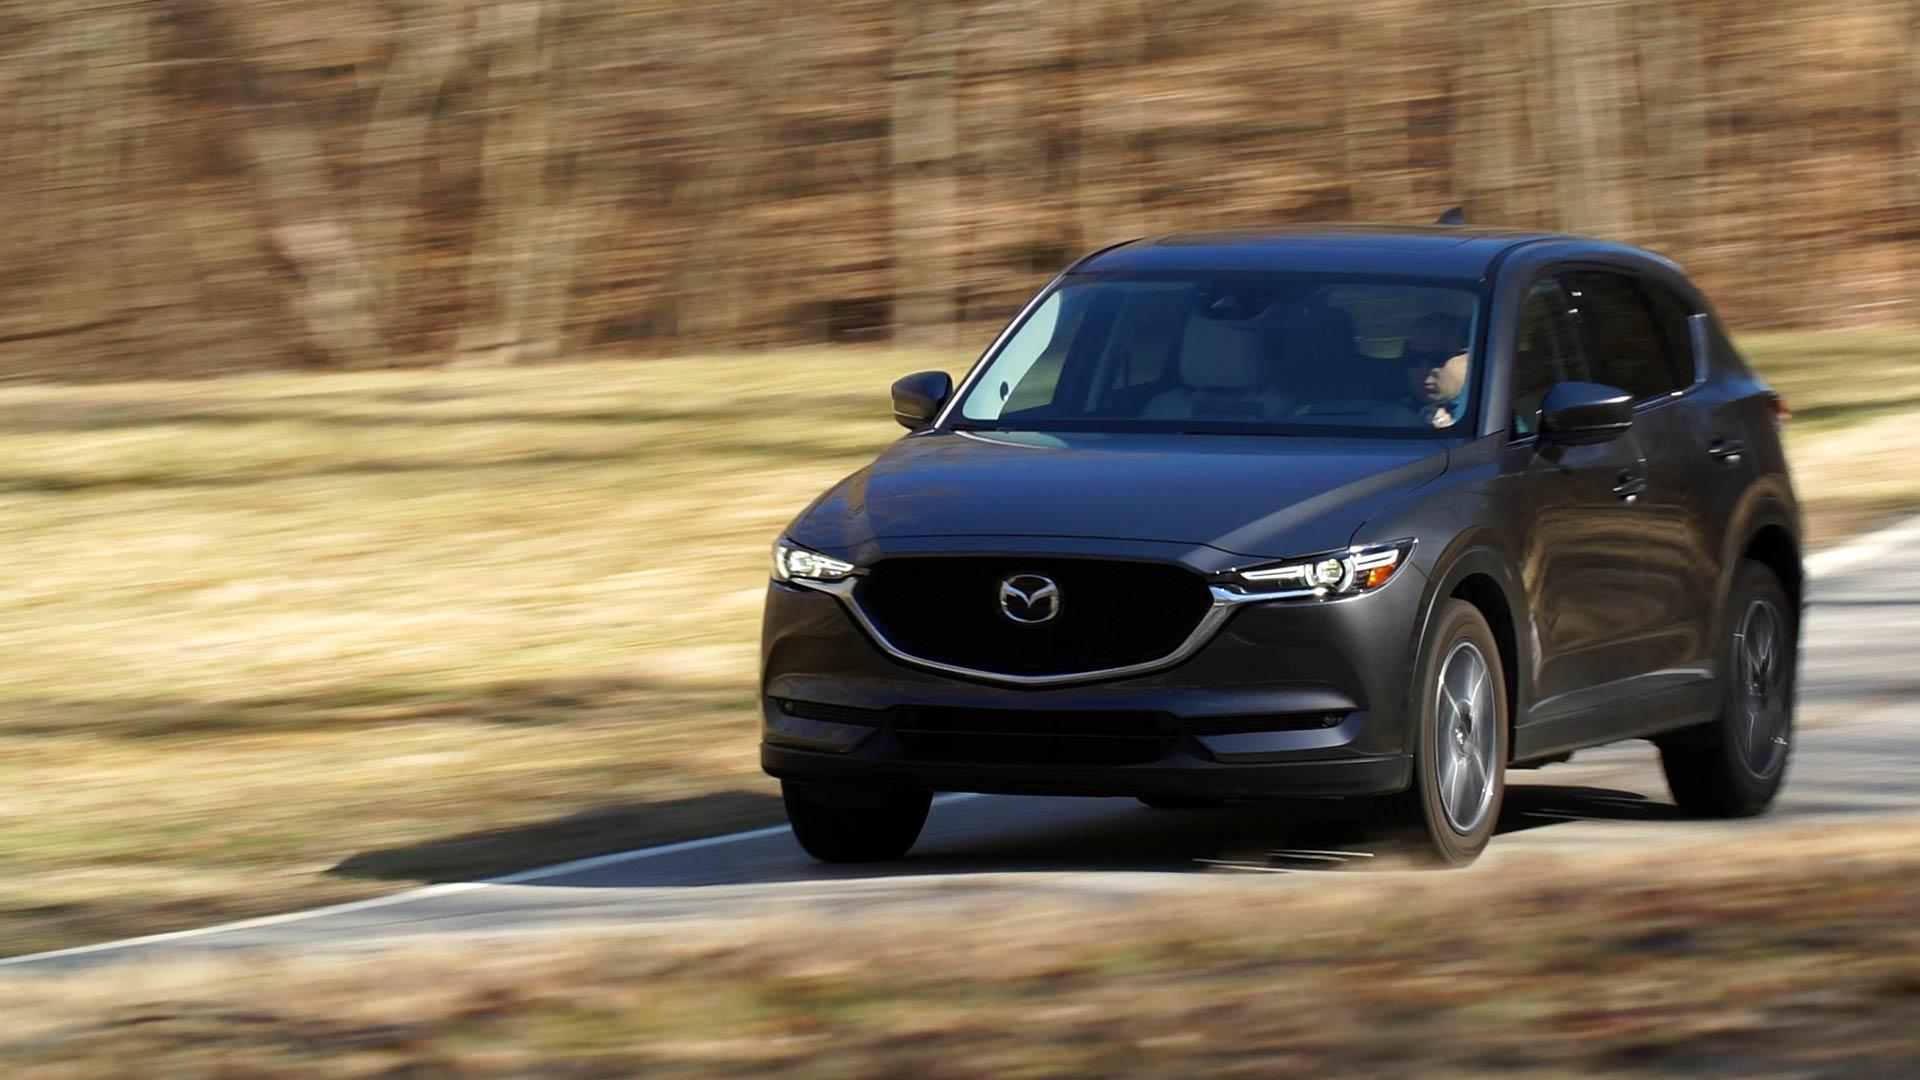 suv reviews touring fq mazda edmunds ratings oem and crv pricing cx grand features